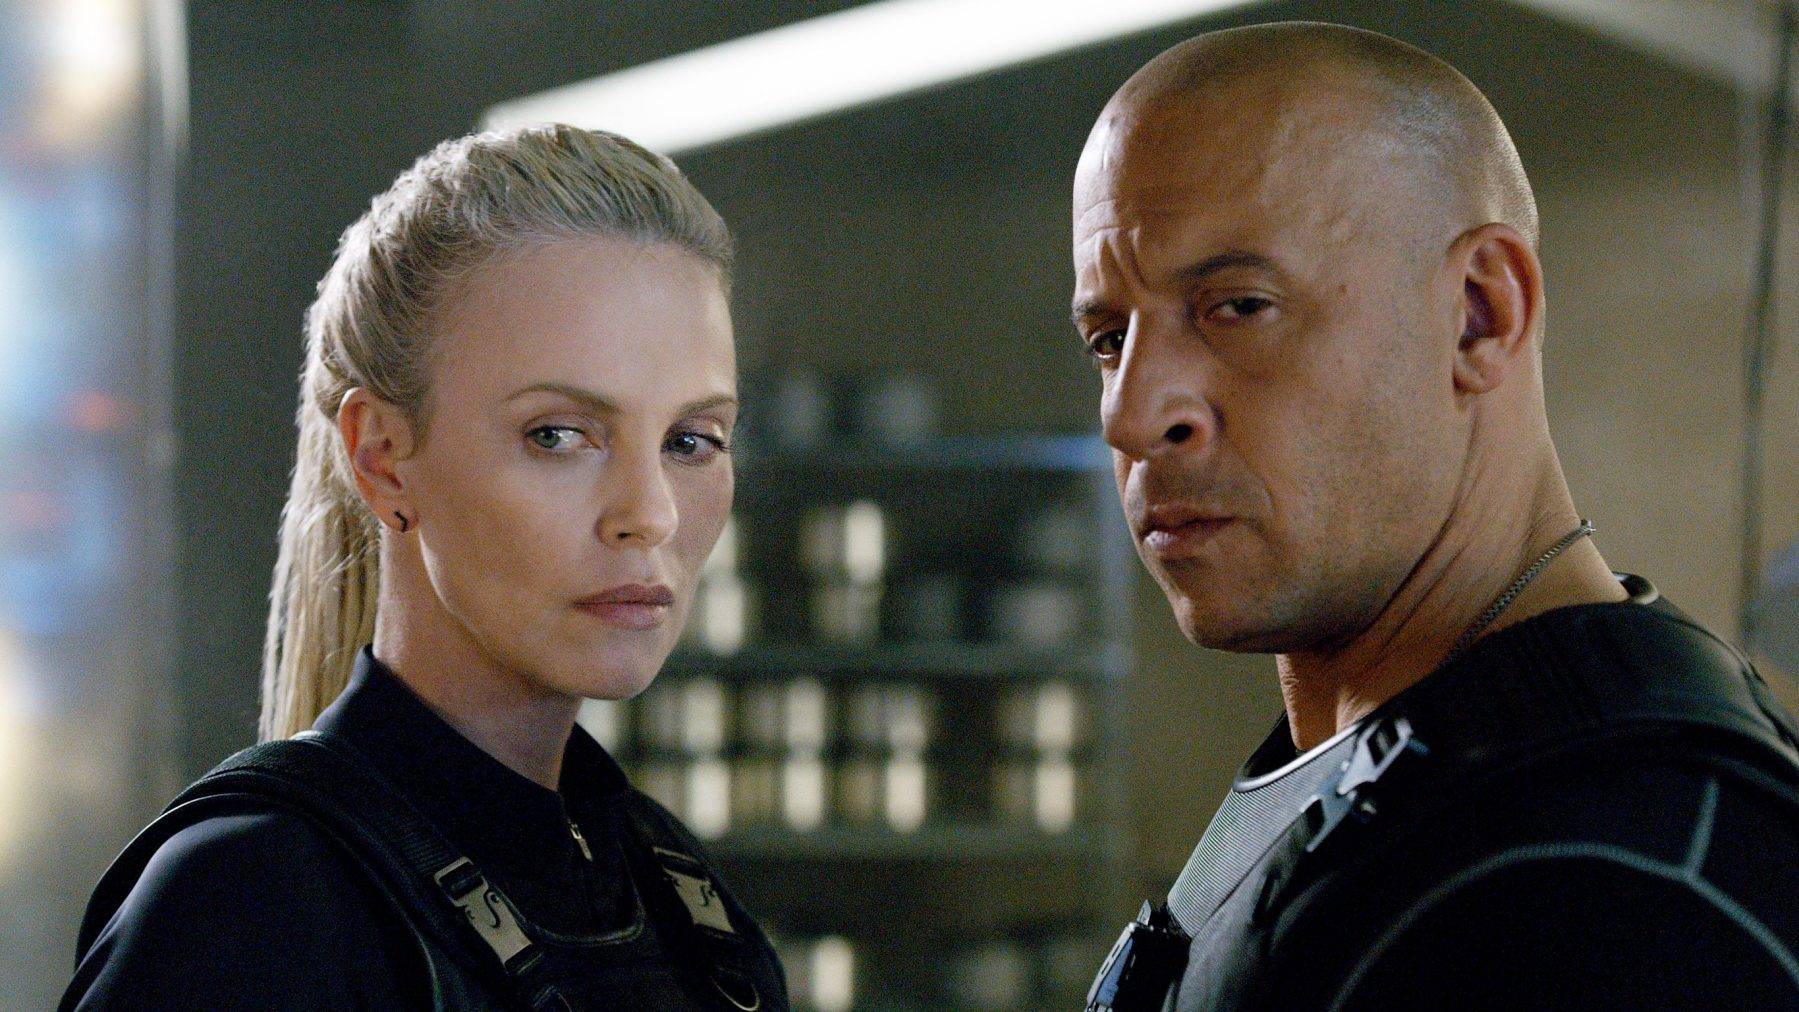 First Trailer for the Latest 'Fast and Furious' Film Features Franchise Newcomer Charlize Theron